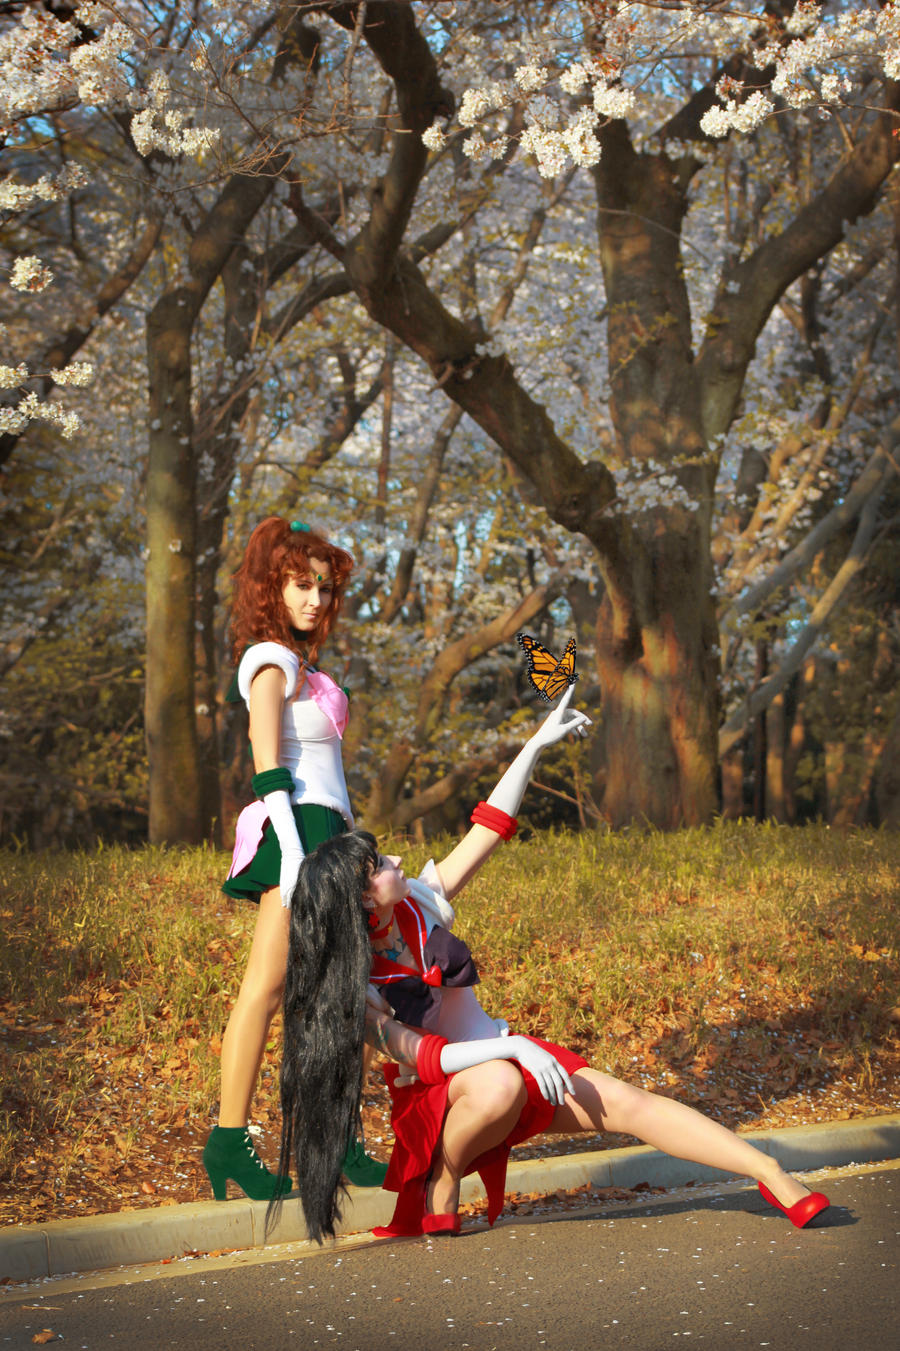 Sailor Jupiter i Sailor Mars by foux86